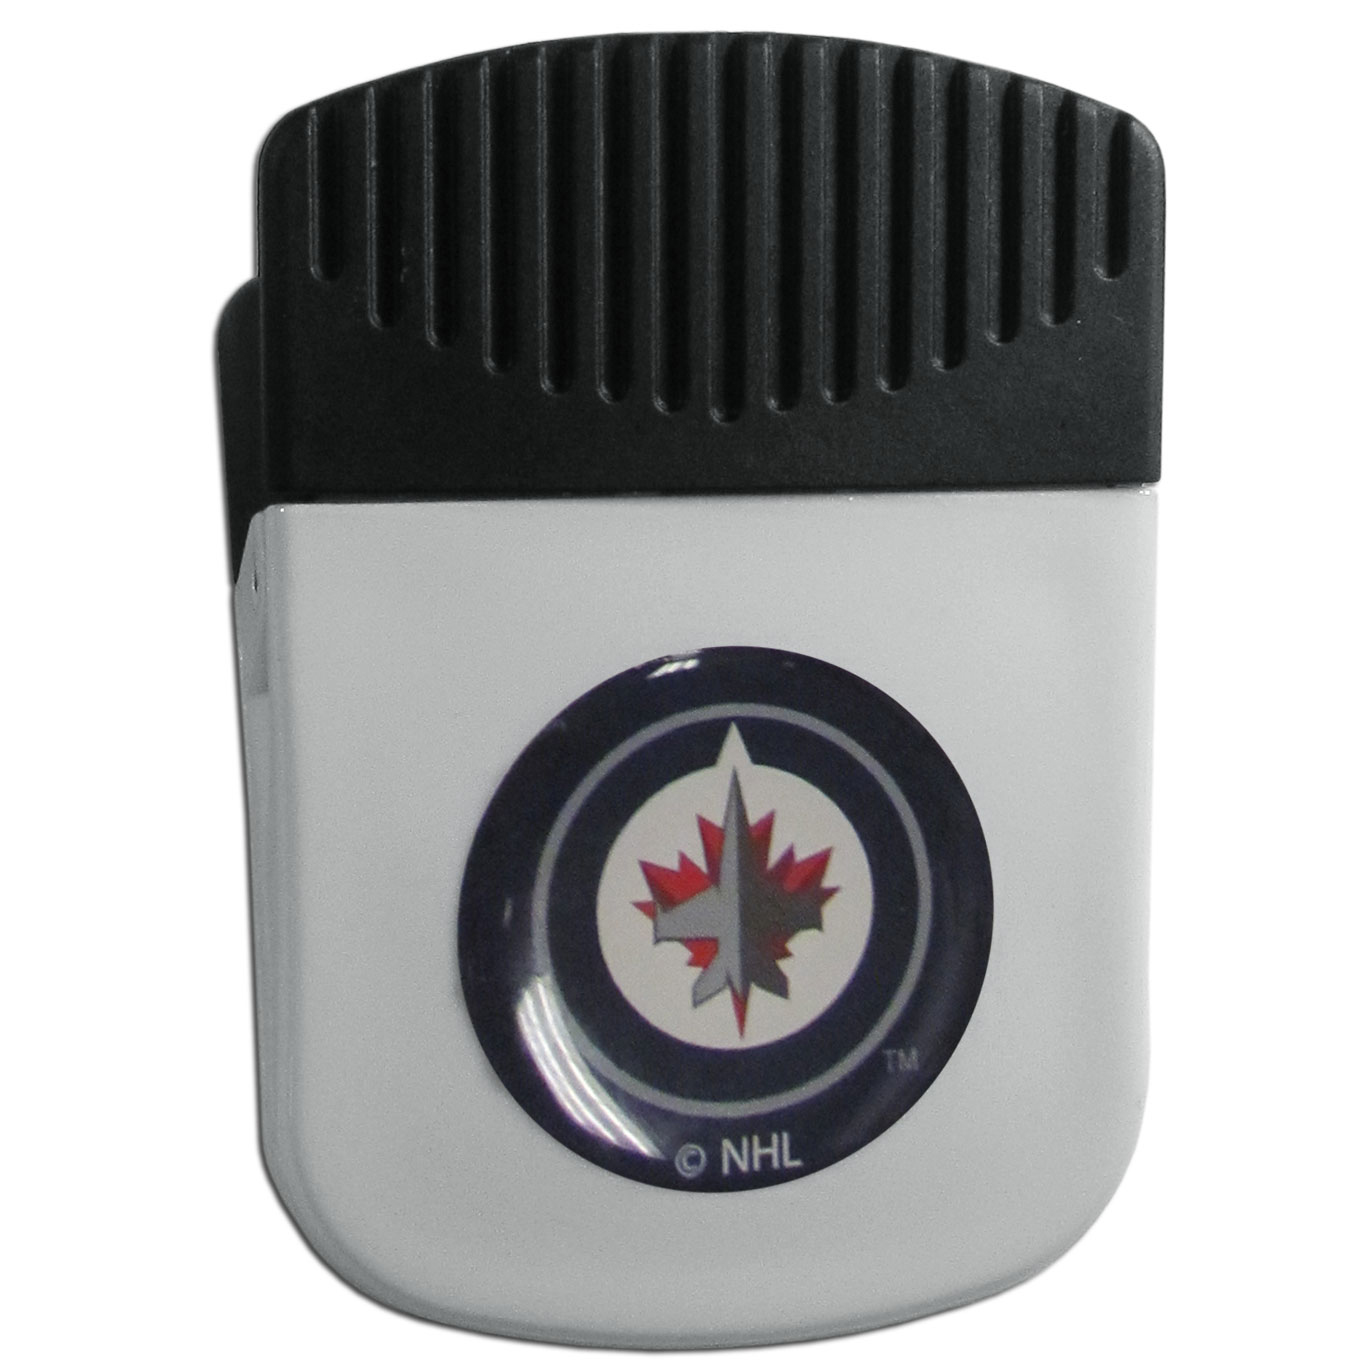 Winnipeg Jets™ Chip Clip Magnet - Use this attractive clip magnet to hold memos, photos or appointment cards on the fridge or take it down keep use it to clip bags shut. The magnet features a domed Winnipeg Jets™ logo.